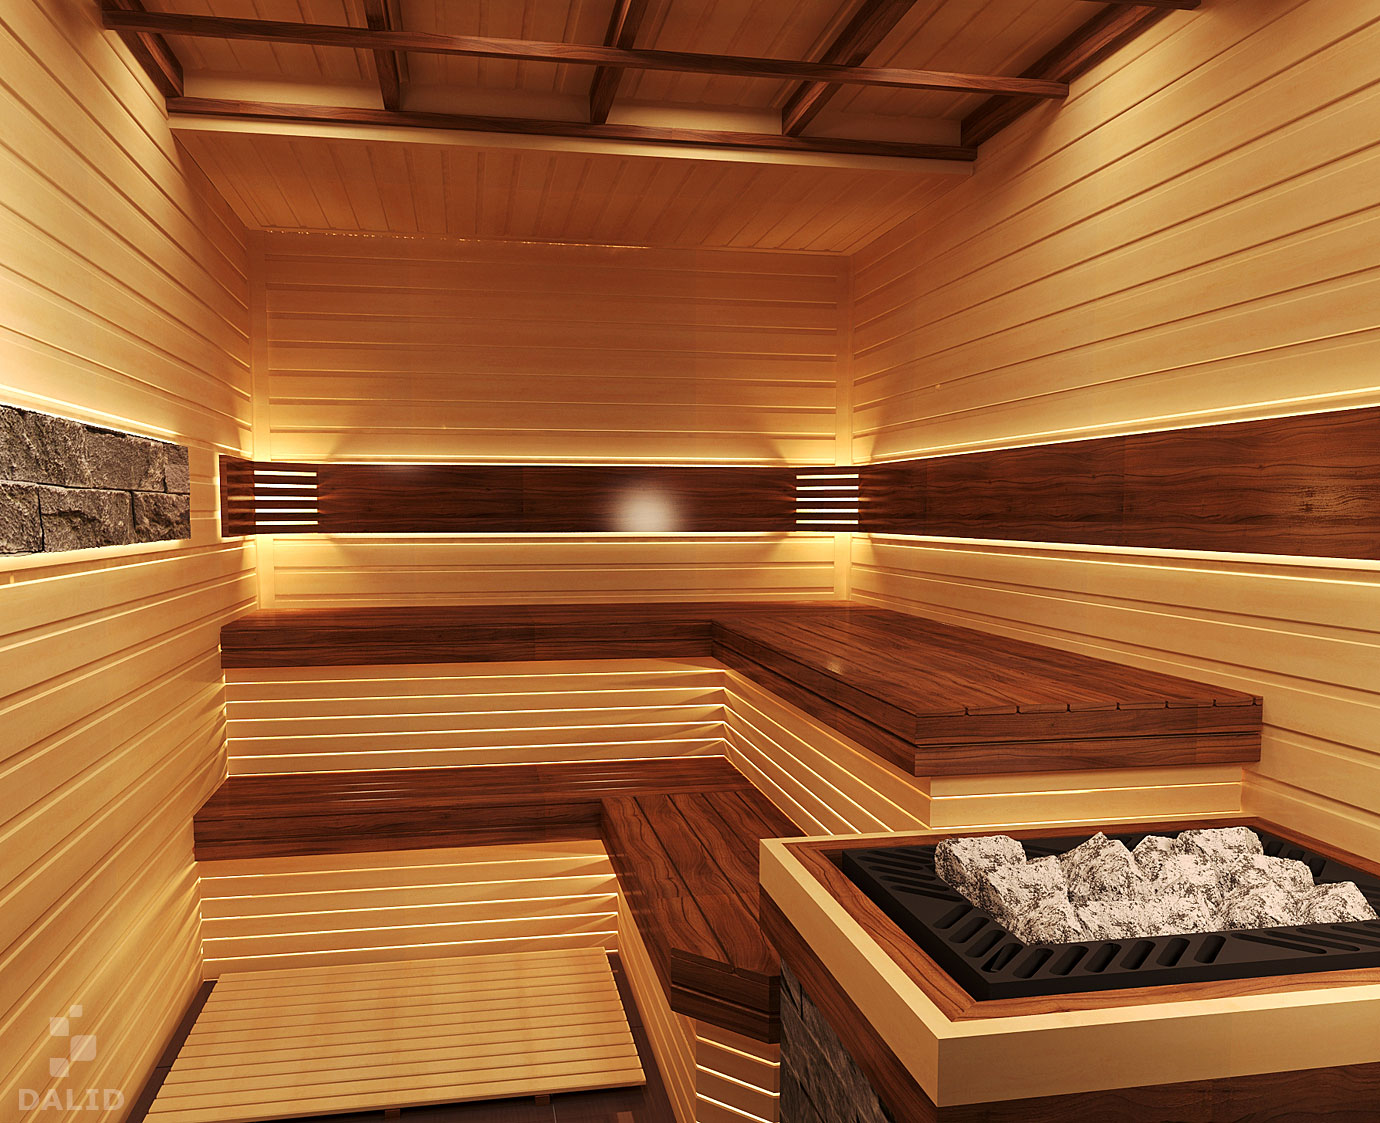 Private SPA with Rome steam rooms (thermae), Finnish sauna and salt room